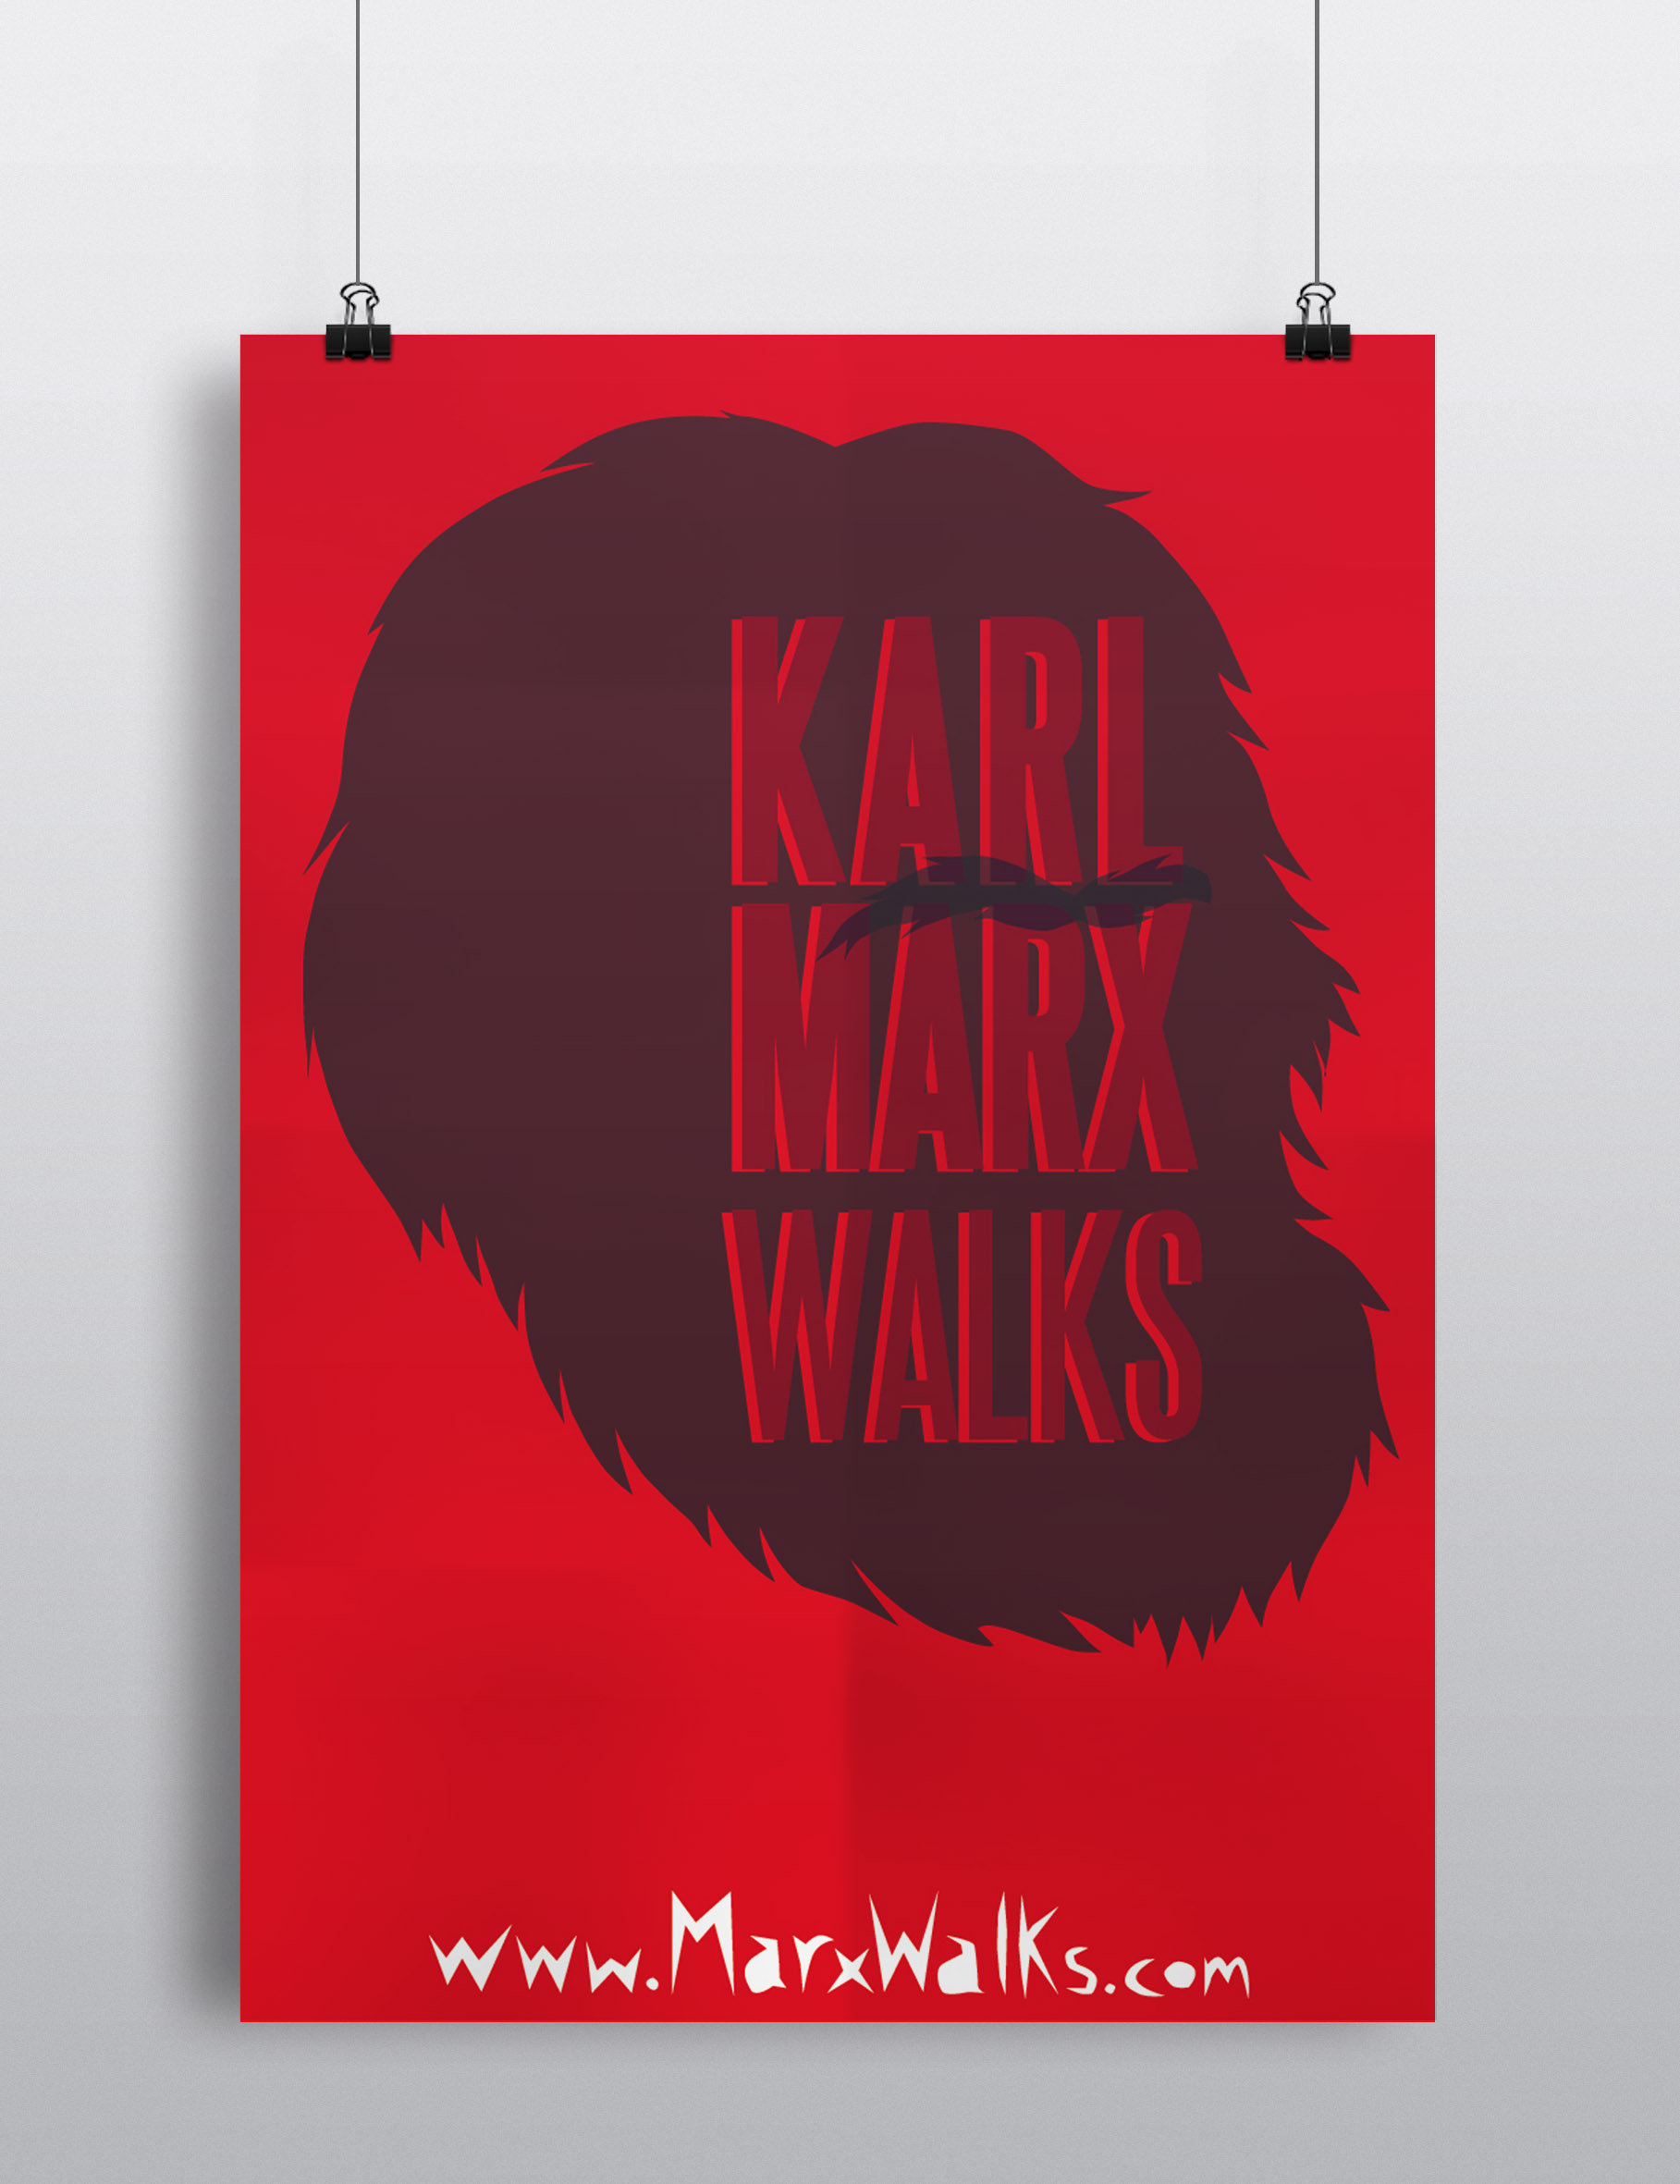 The Karl Marx Walking Tour